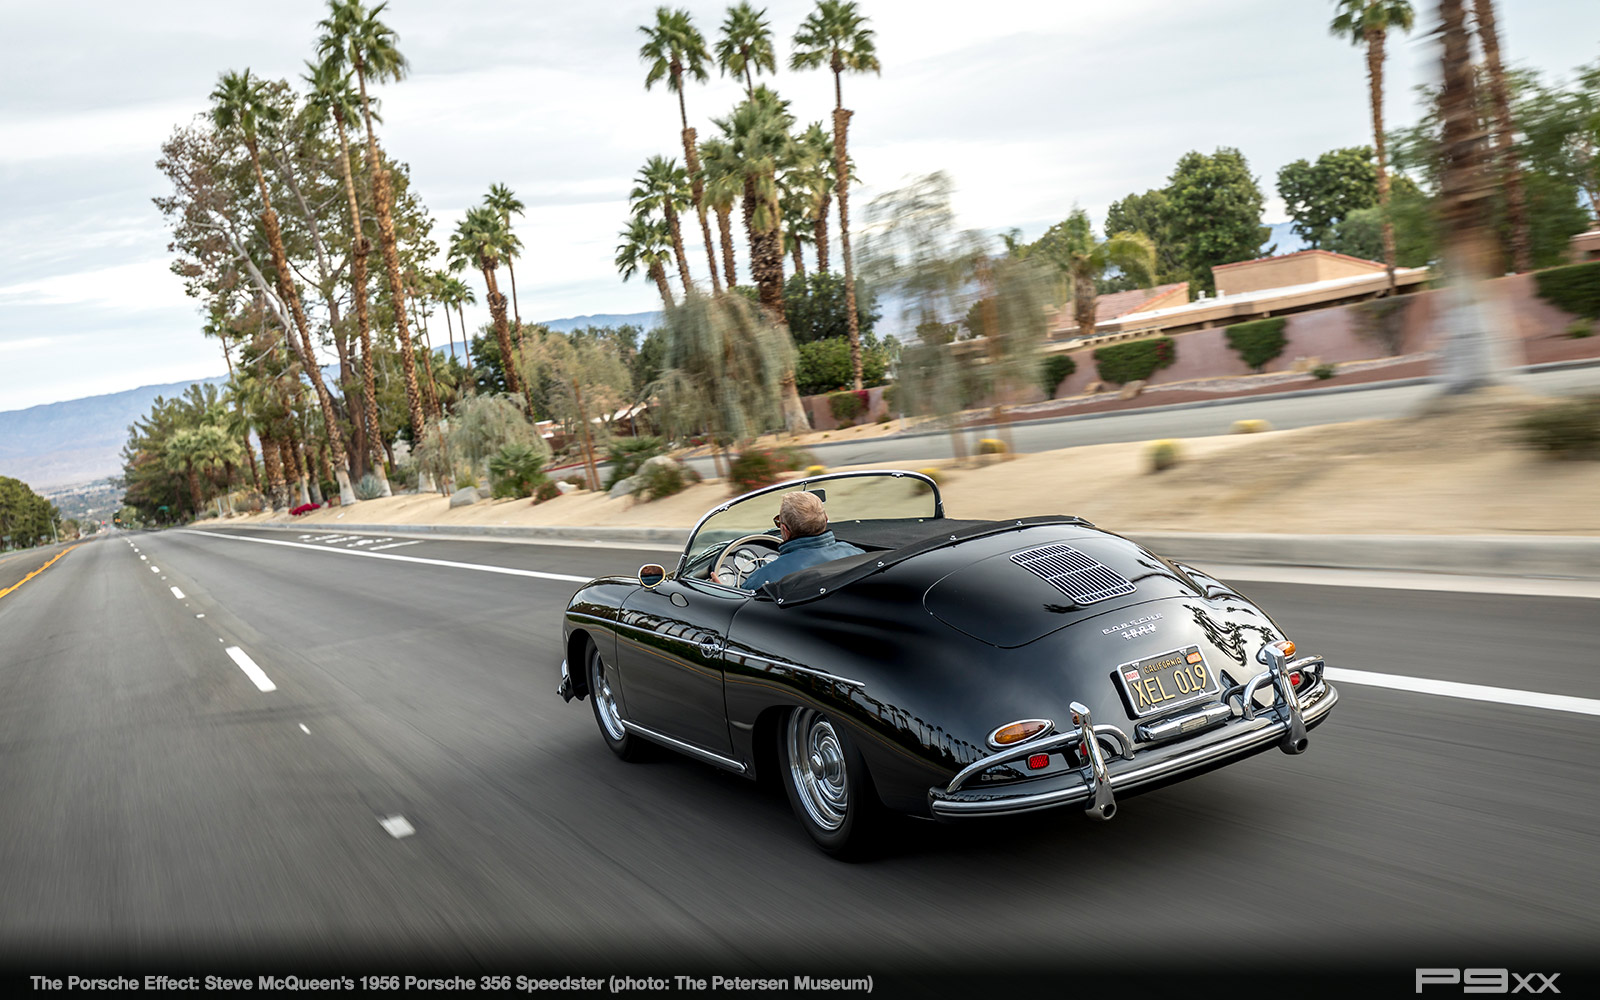 1956-Steve-McQueen-Chad-356-Speedster-Petersen-Automotive-Museum-The-Porsche-Effect-343